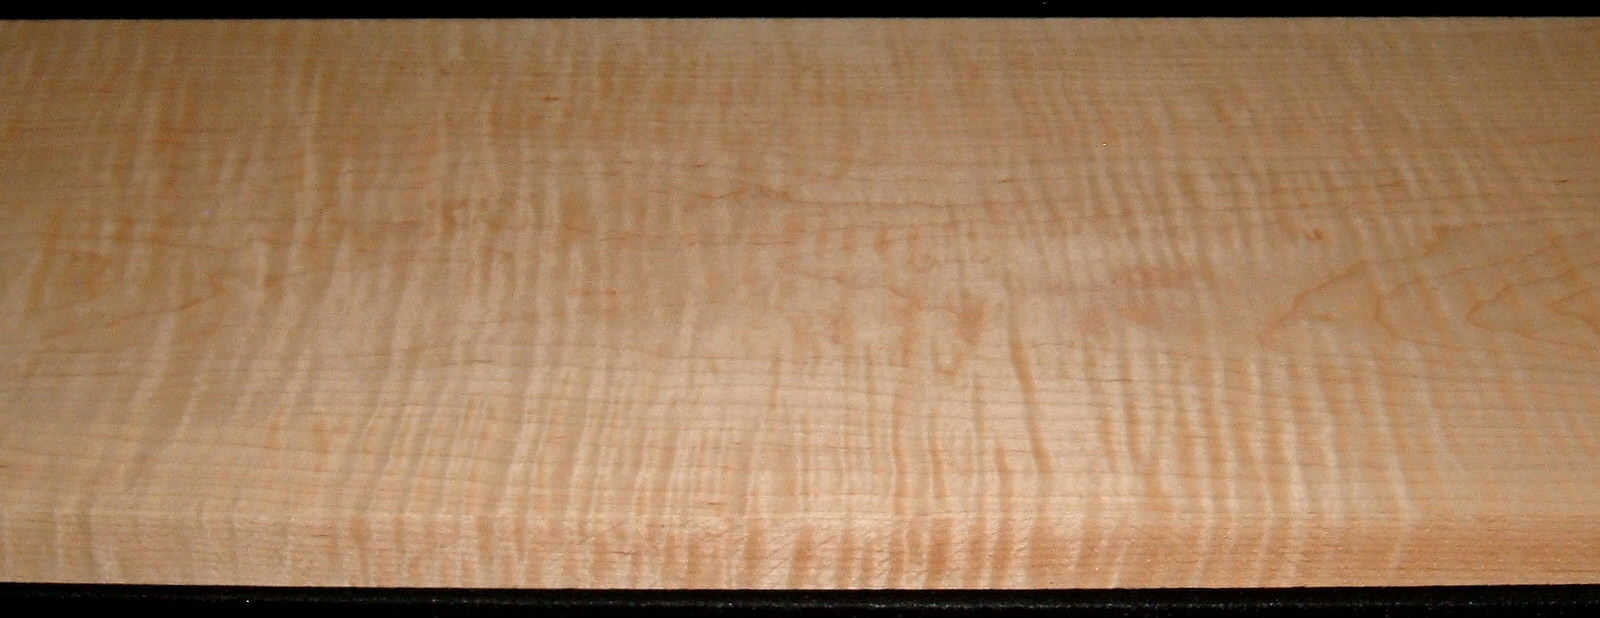 M2007-573, 1-3/16x11-1/2x50, Curly Tiger Maple